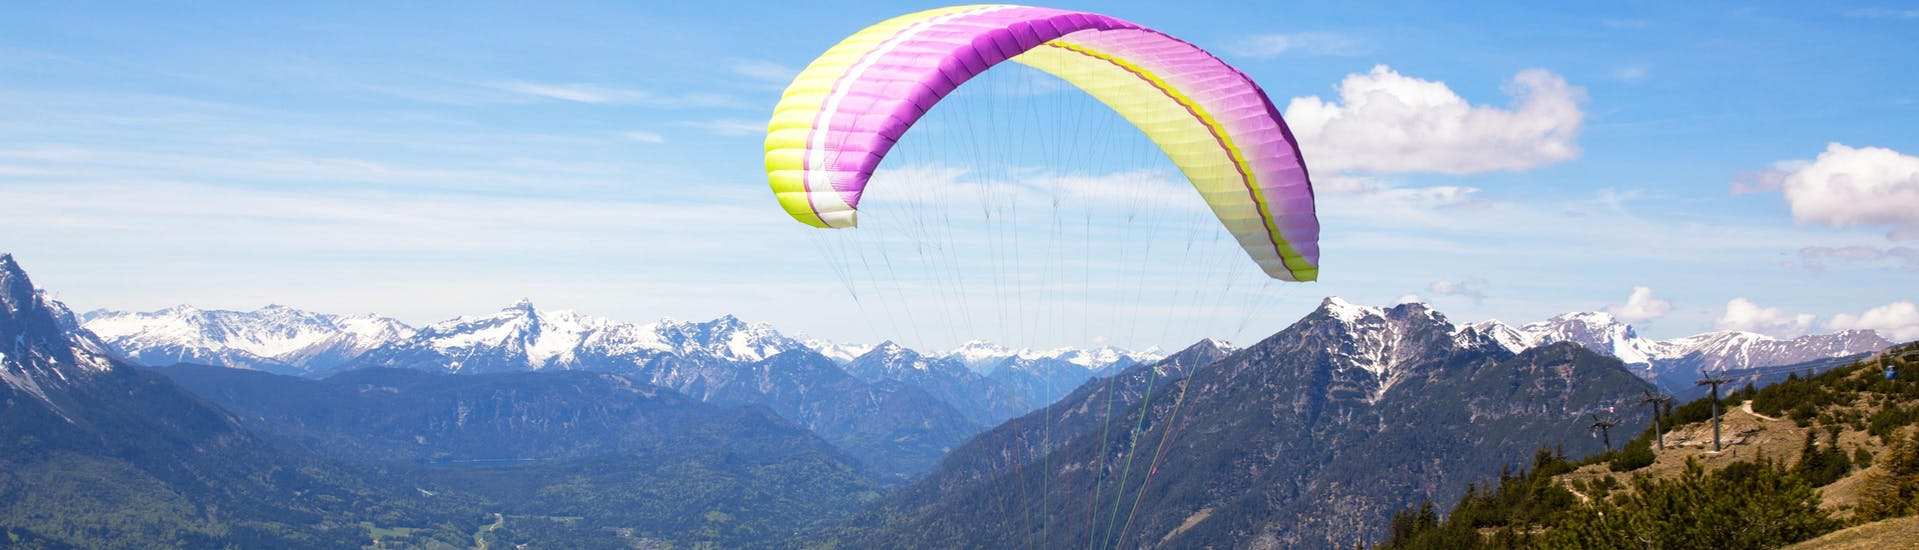 A tandem master and his passenger are sailing through cloudy skies while paragliding in Garmisch-Partenkirchen.